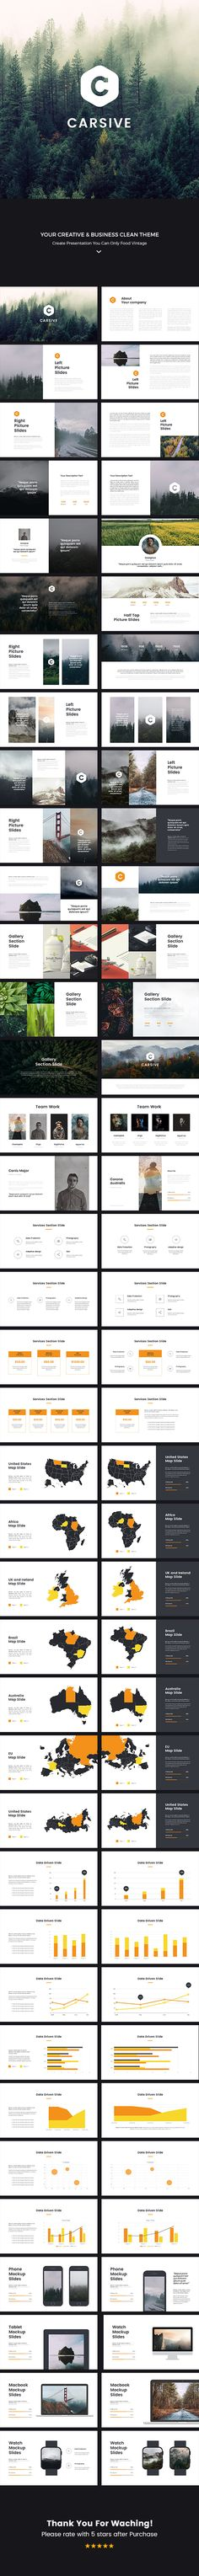 Carsive Clean Powerpoint Template — Powerpoint PPT #pptx #ppi • Download ➝ https://graphicriver.net/item/carsive-clean-powerpoint-template/18961293?ref=pxcr